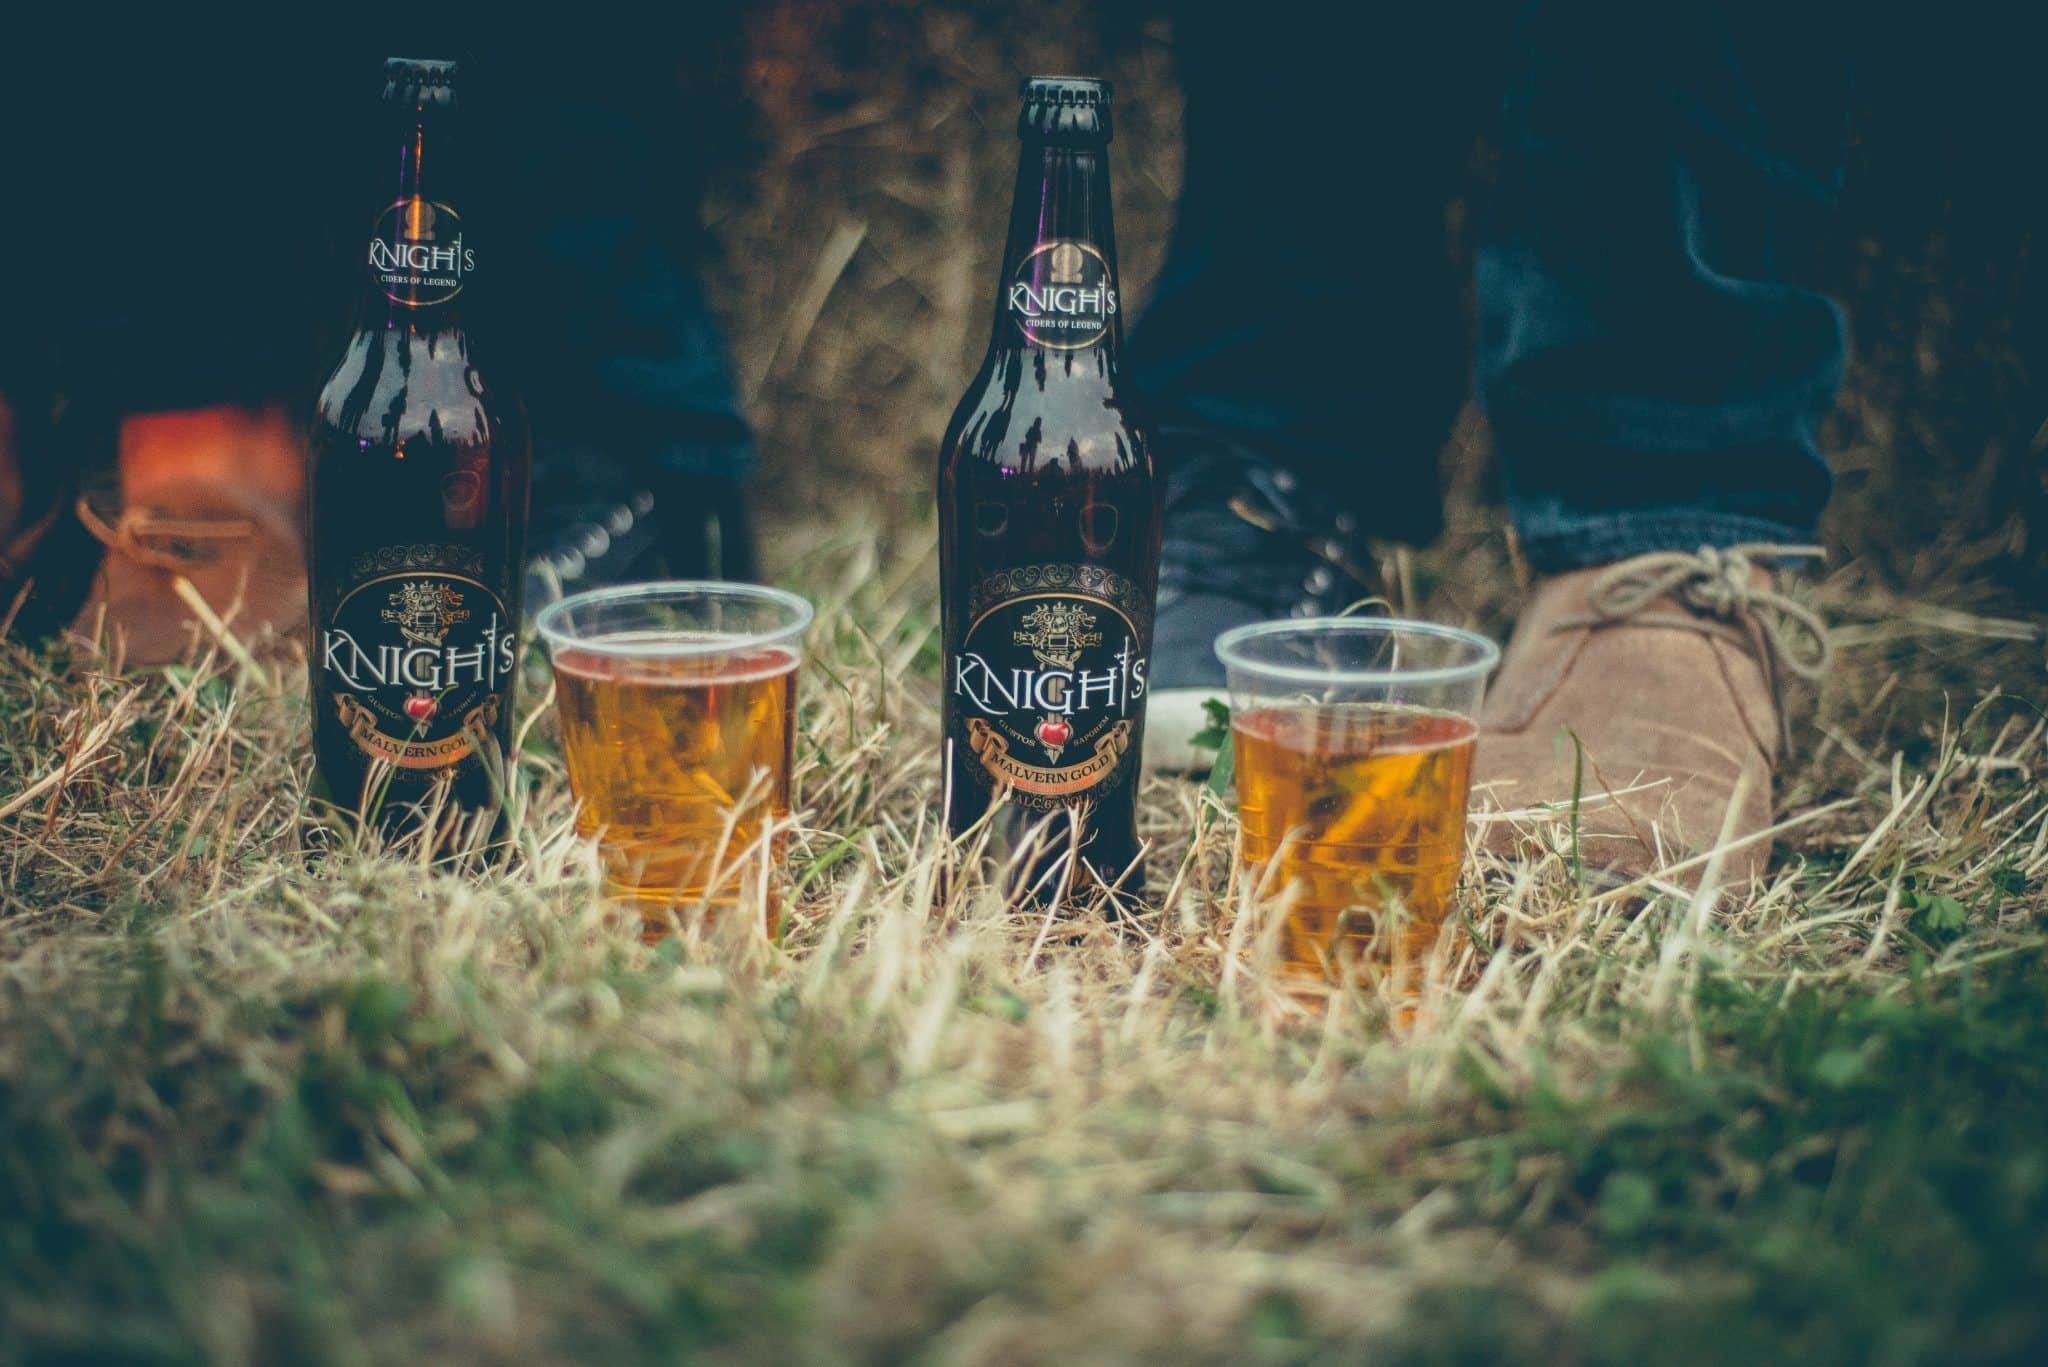 Tiverton Cider Company – Aston Manor Cider Named Best In The World